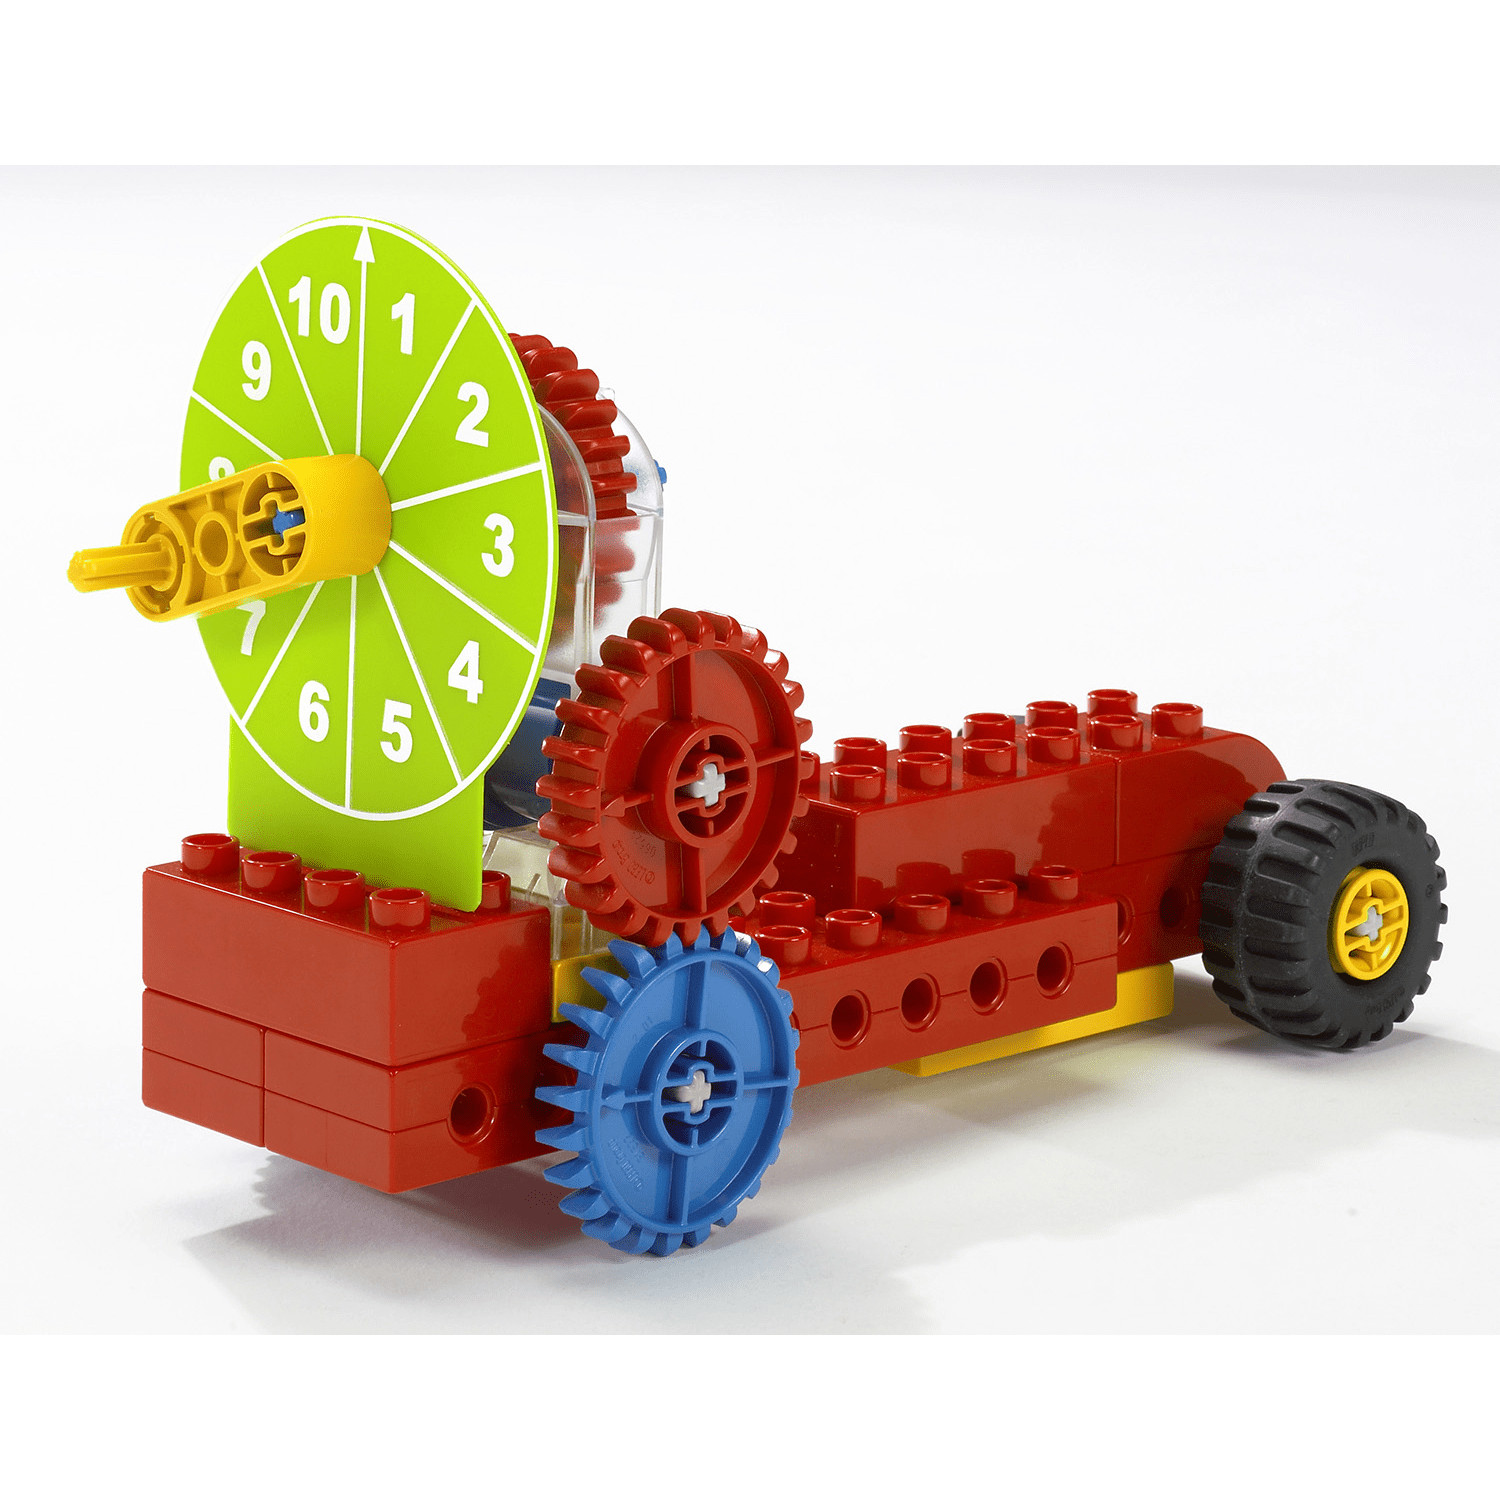 Lego Duplo Early Simple Machines Set